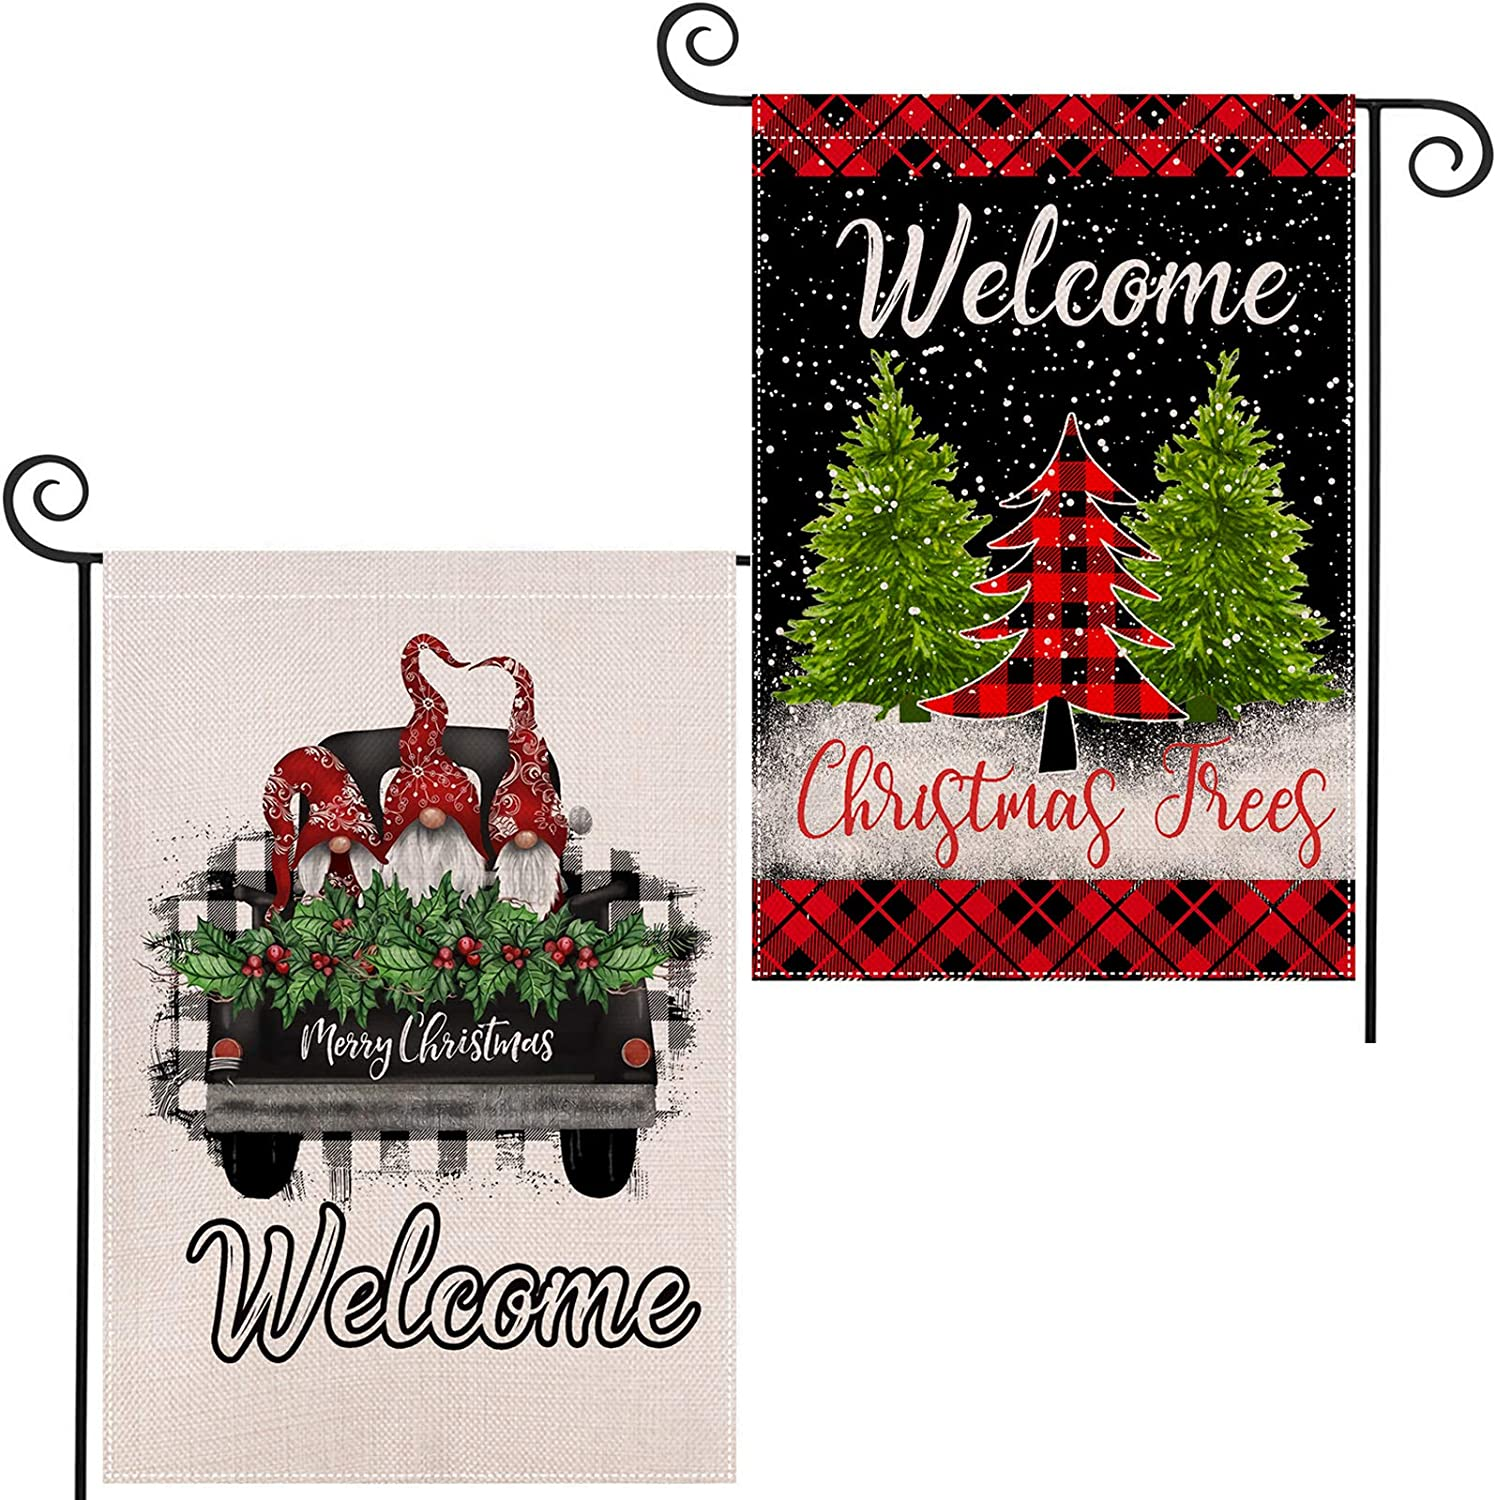 EKOREST 2Pack Christmas Garden Flag for Outdoor 12.5x18Inch Gnome Truck Decorations Double Sided and Buffalo Plaid Christmas Decorations Marry Christmas Yard Sign Xmas Decor for Winter Farmhouse Patio